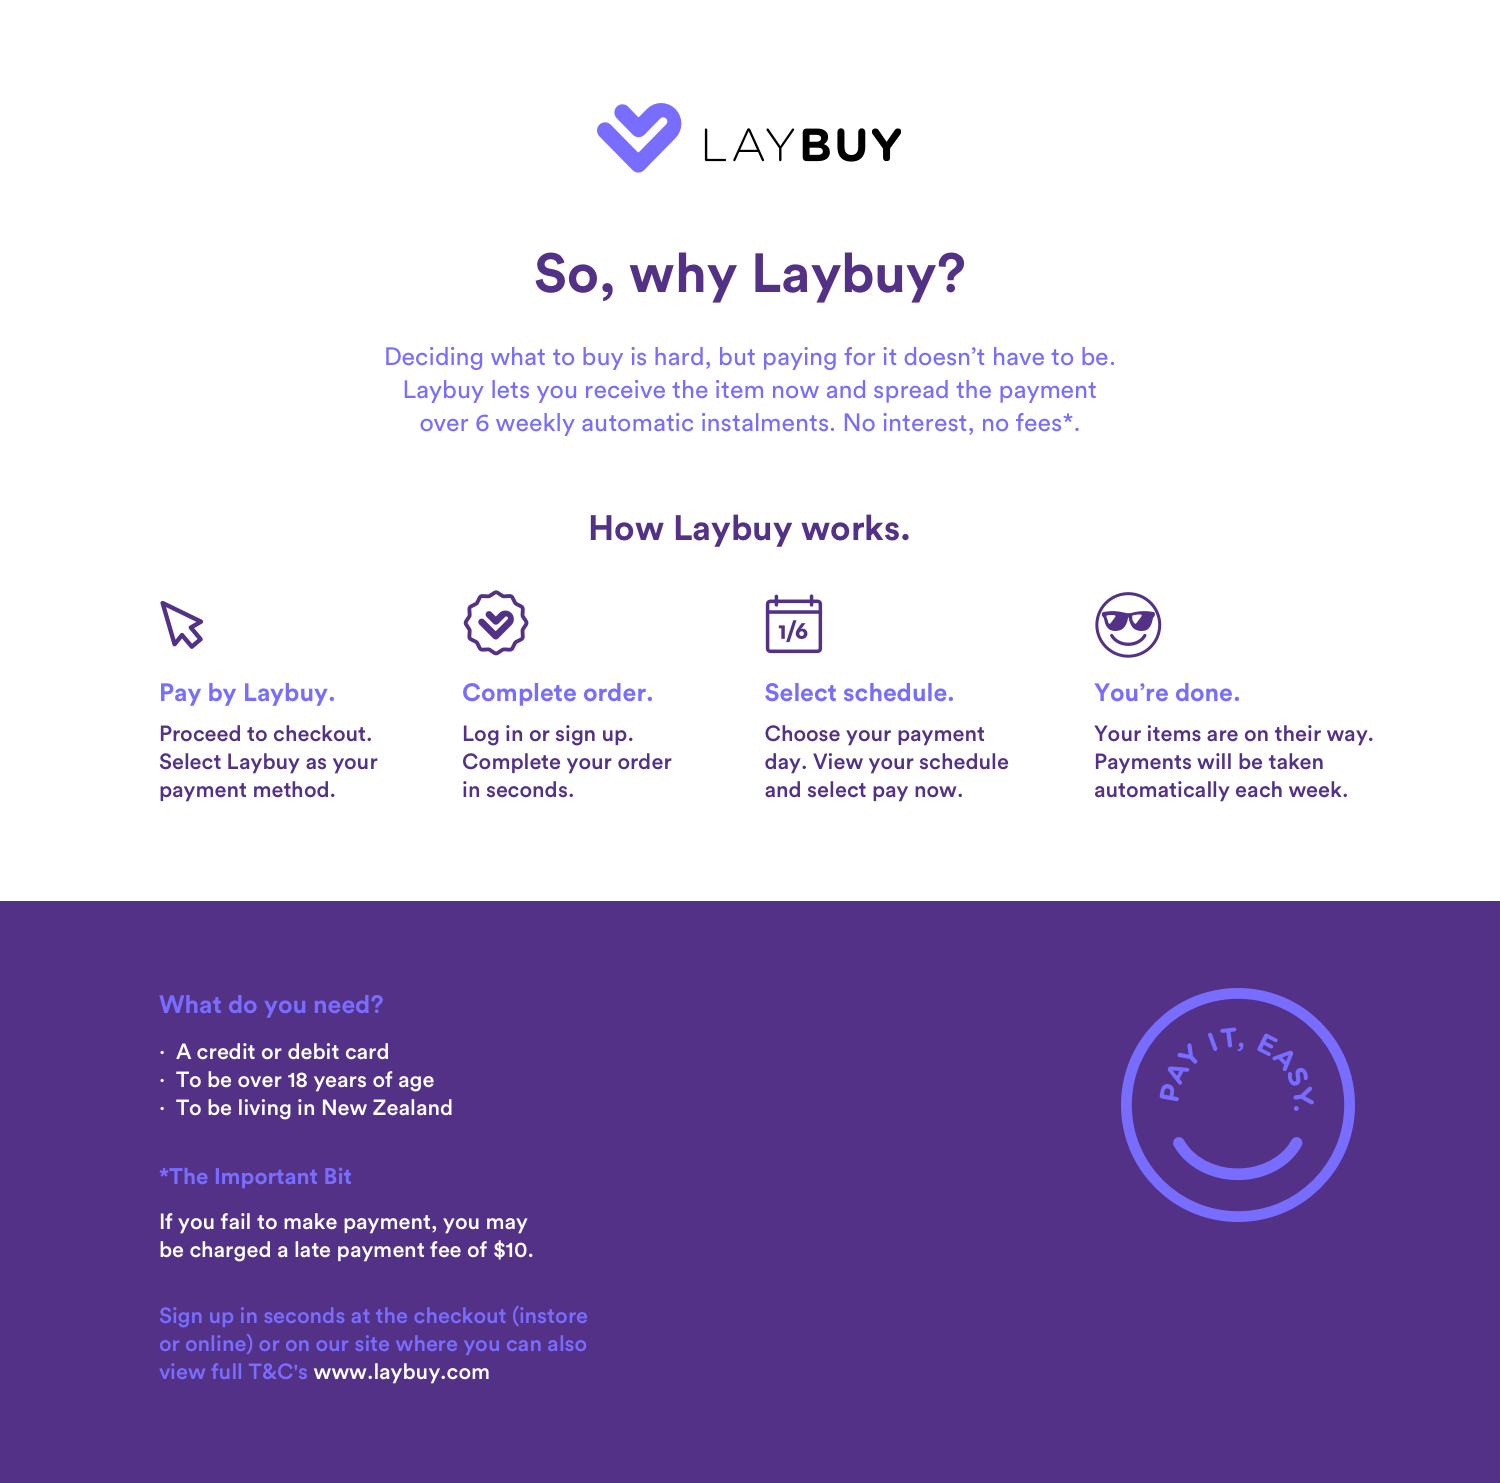 Laybuy about page